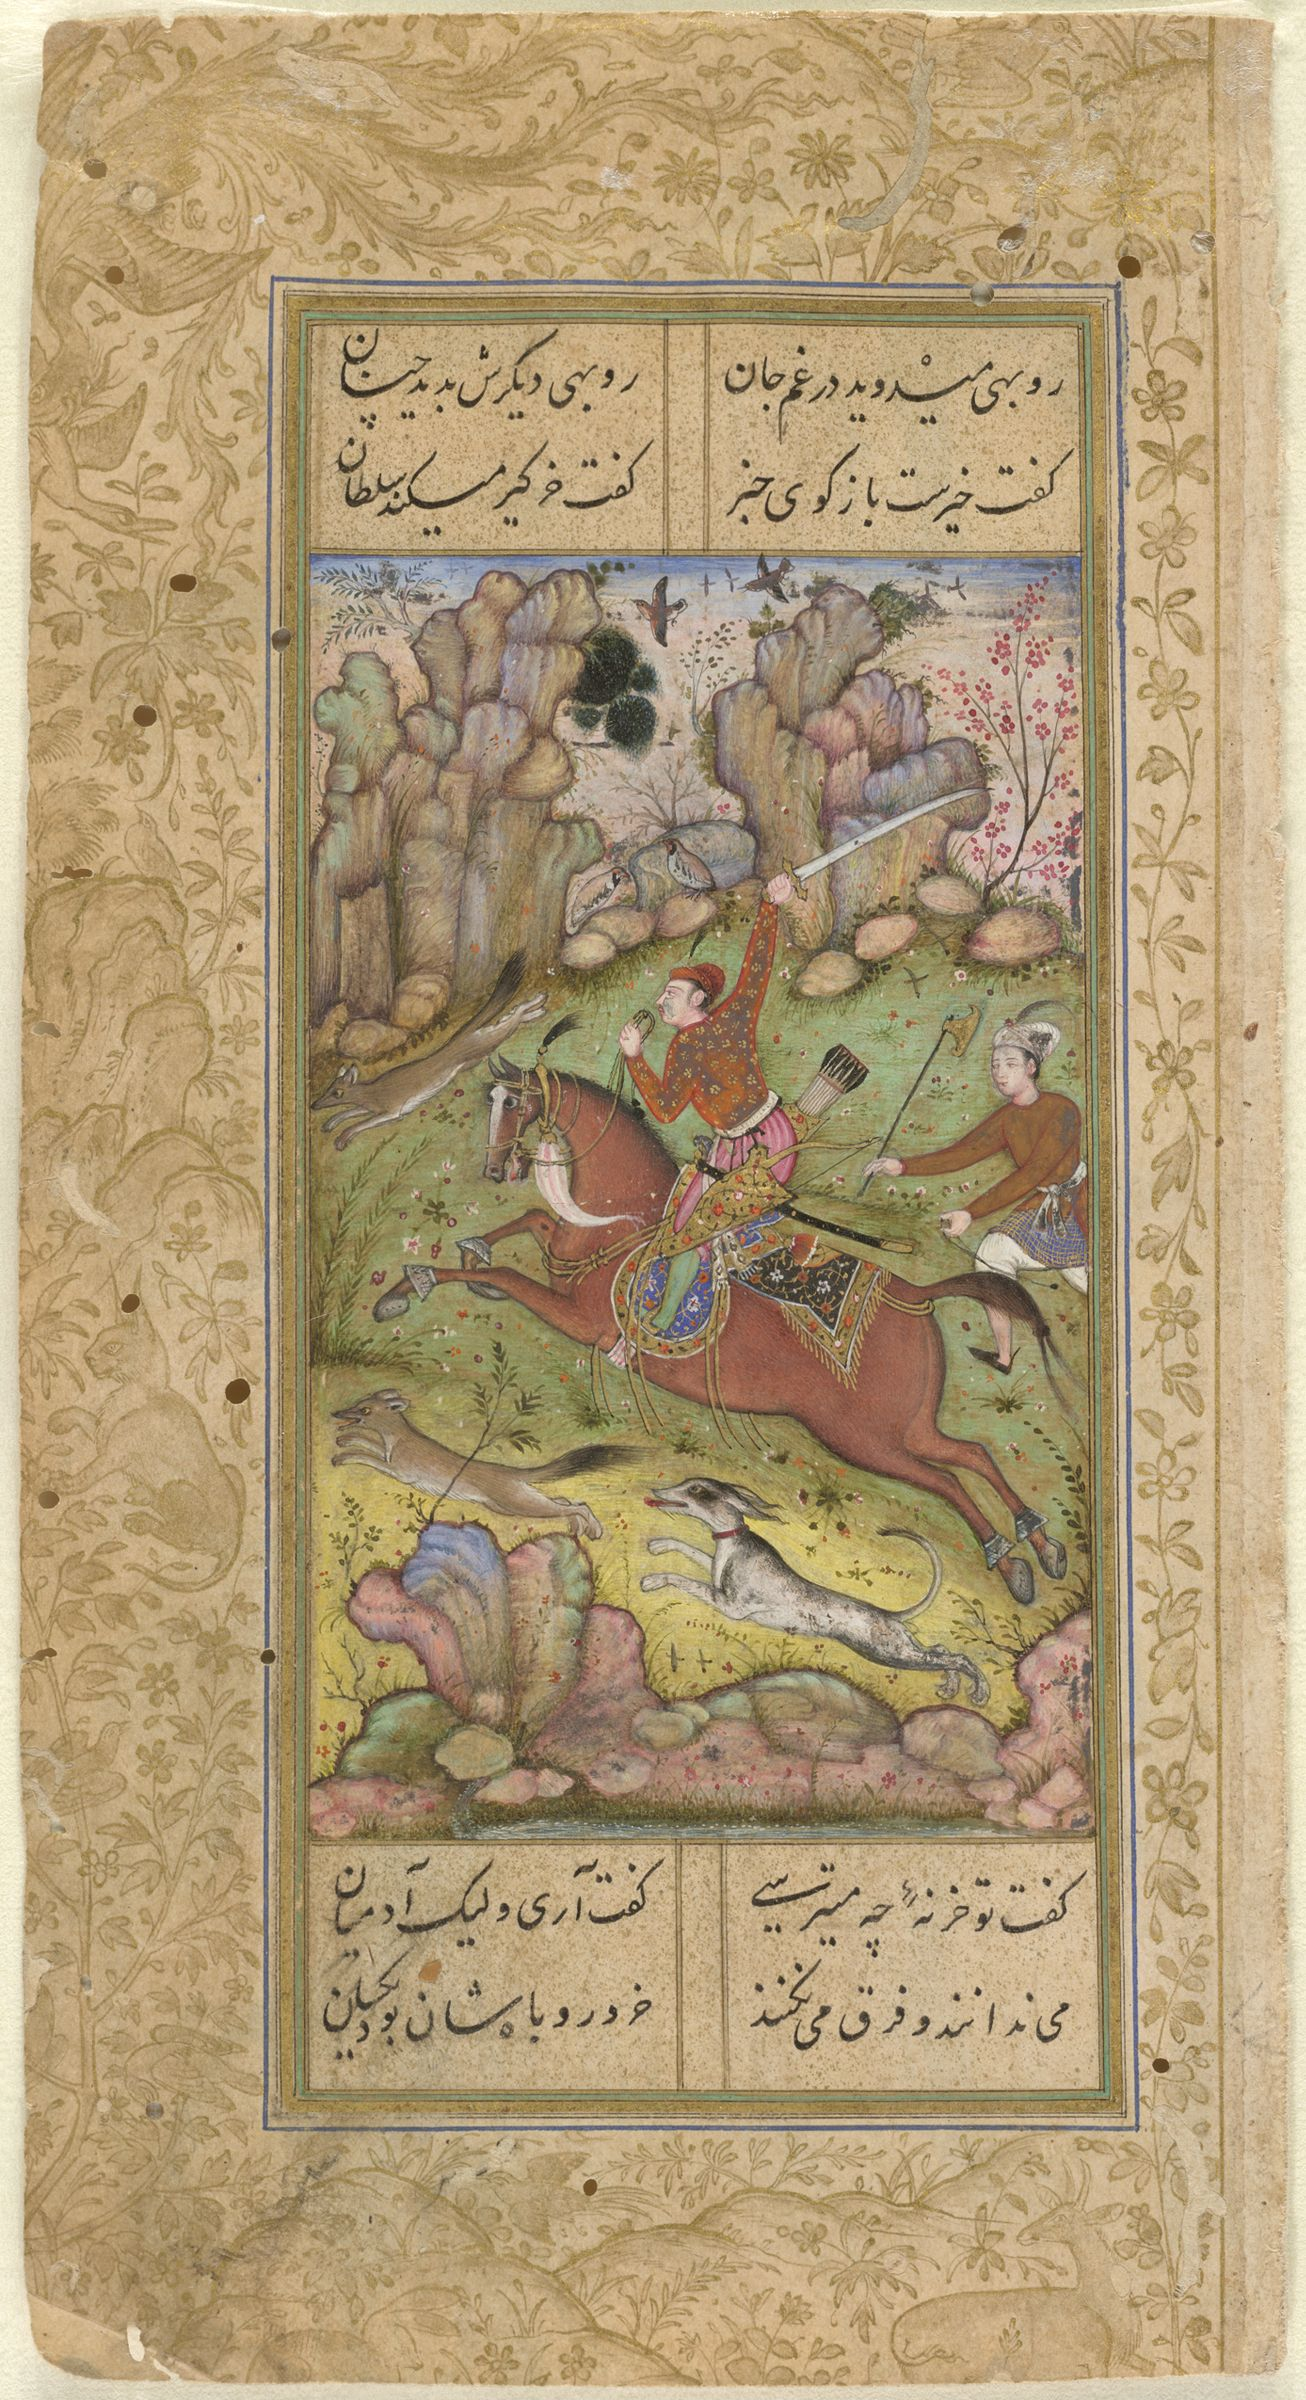 The Fox's Fear (Painting, Recto; Text, Verso), Folio 314 From A Manuscript Of The Divan (Collection Of Works) Of Anvari